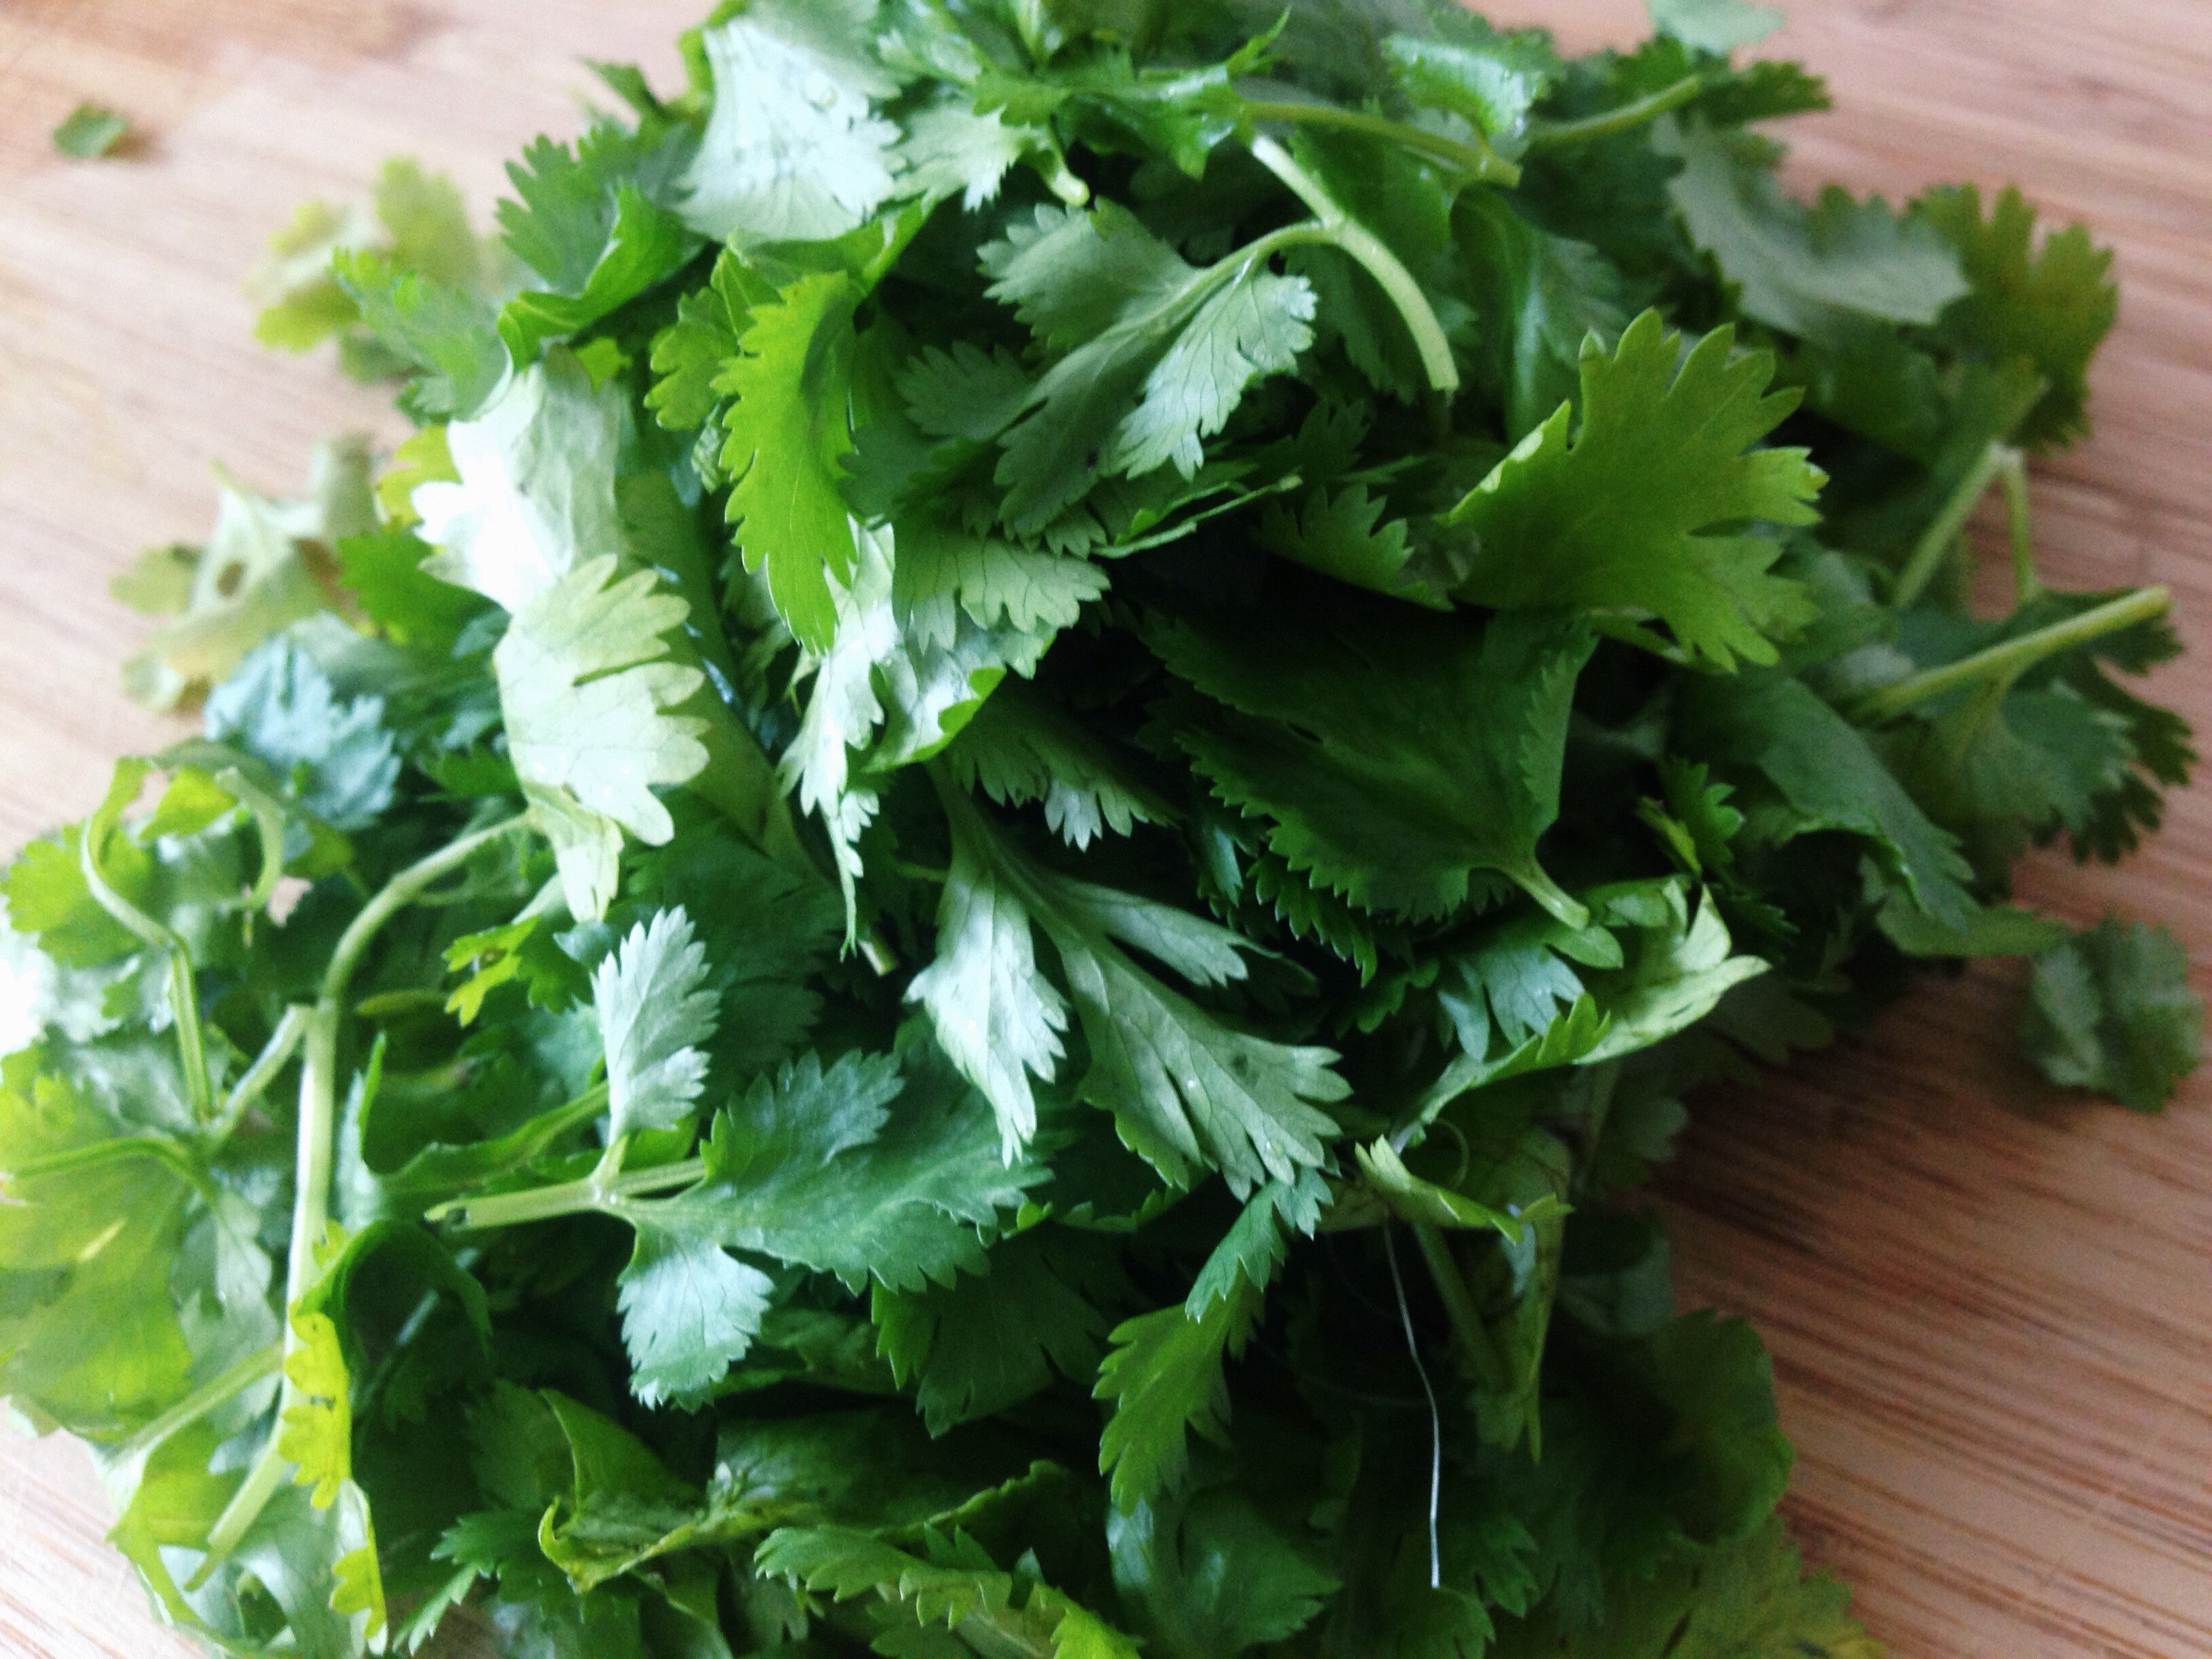 Trendy Parsley Can You Freeze Coriander Uk This Will Make You Feel Alive On So Many Salvaging Something Youwould Have Thrown Saving Having Cilantro No More Wasted Cilantro Your Biggest Grace Can You F houzz 01 Can You Freeze Cilantro